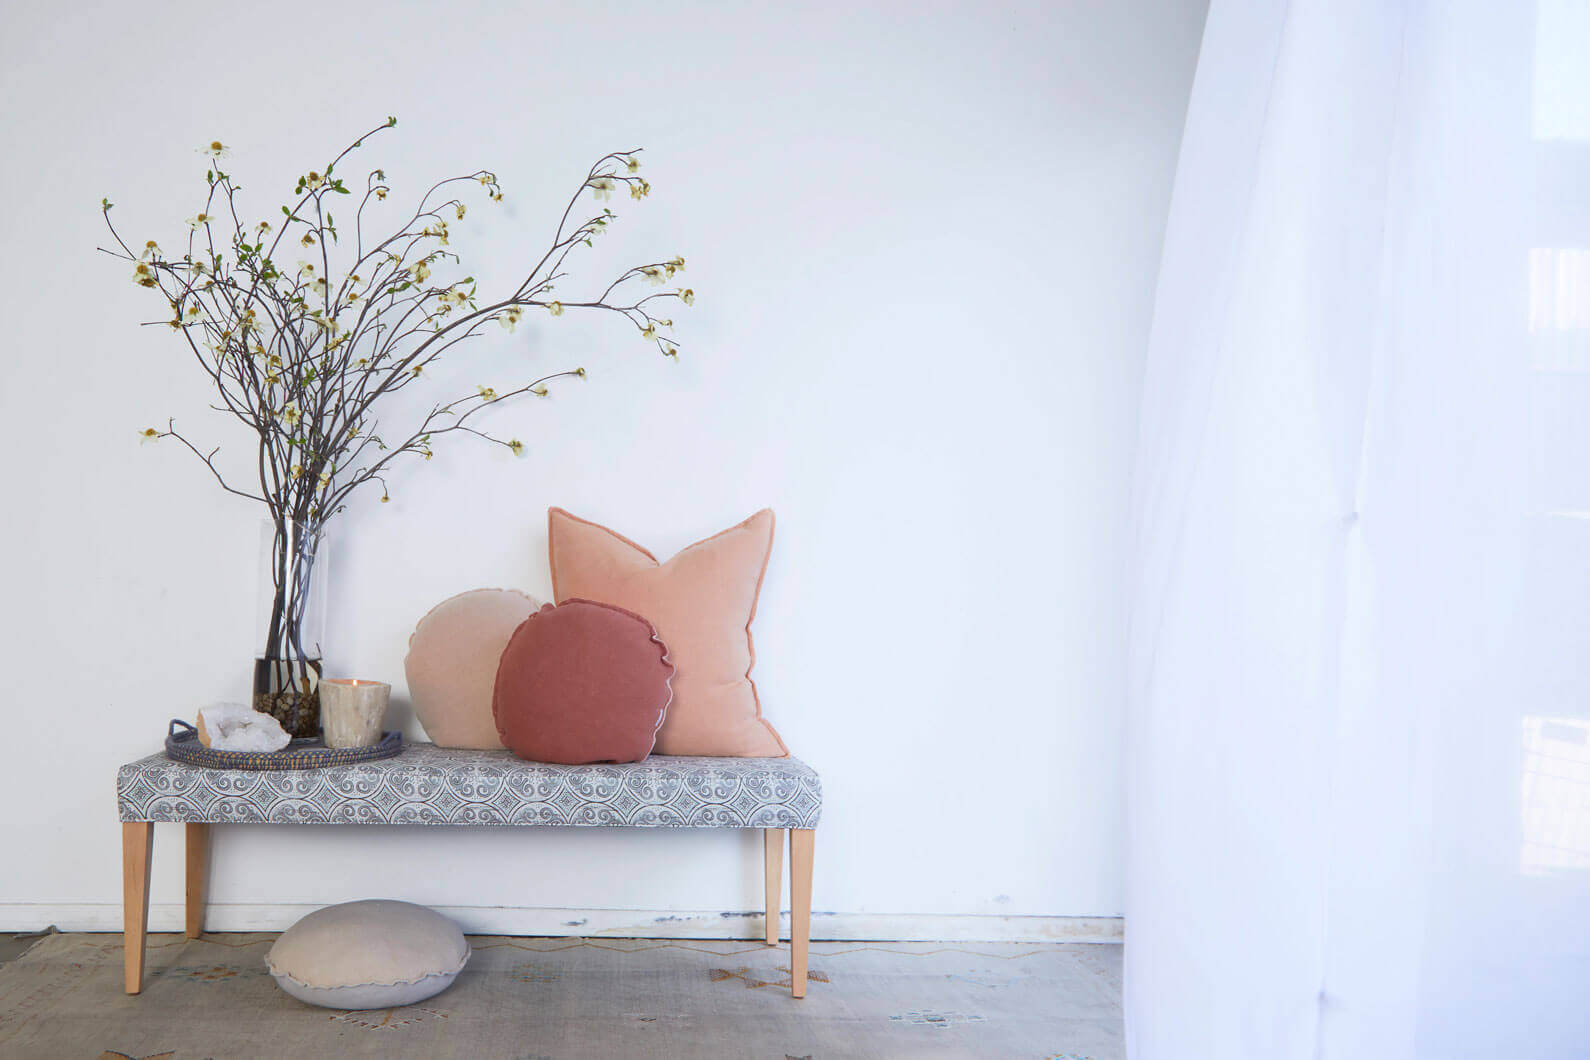 Upholstered bench with throw pillows